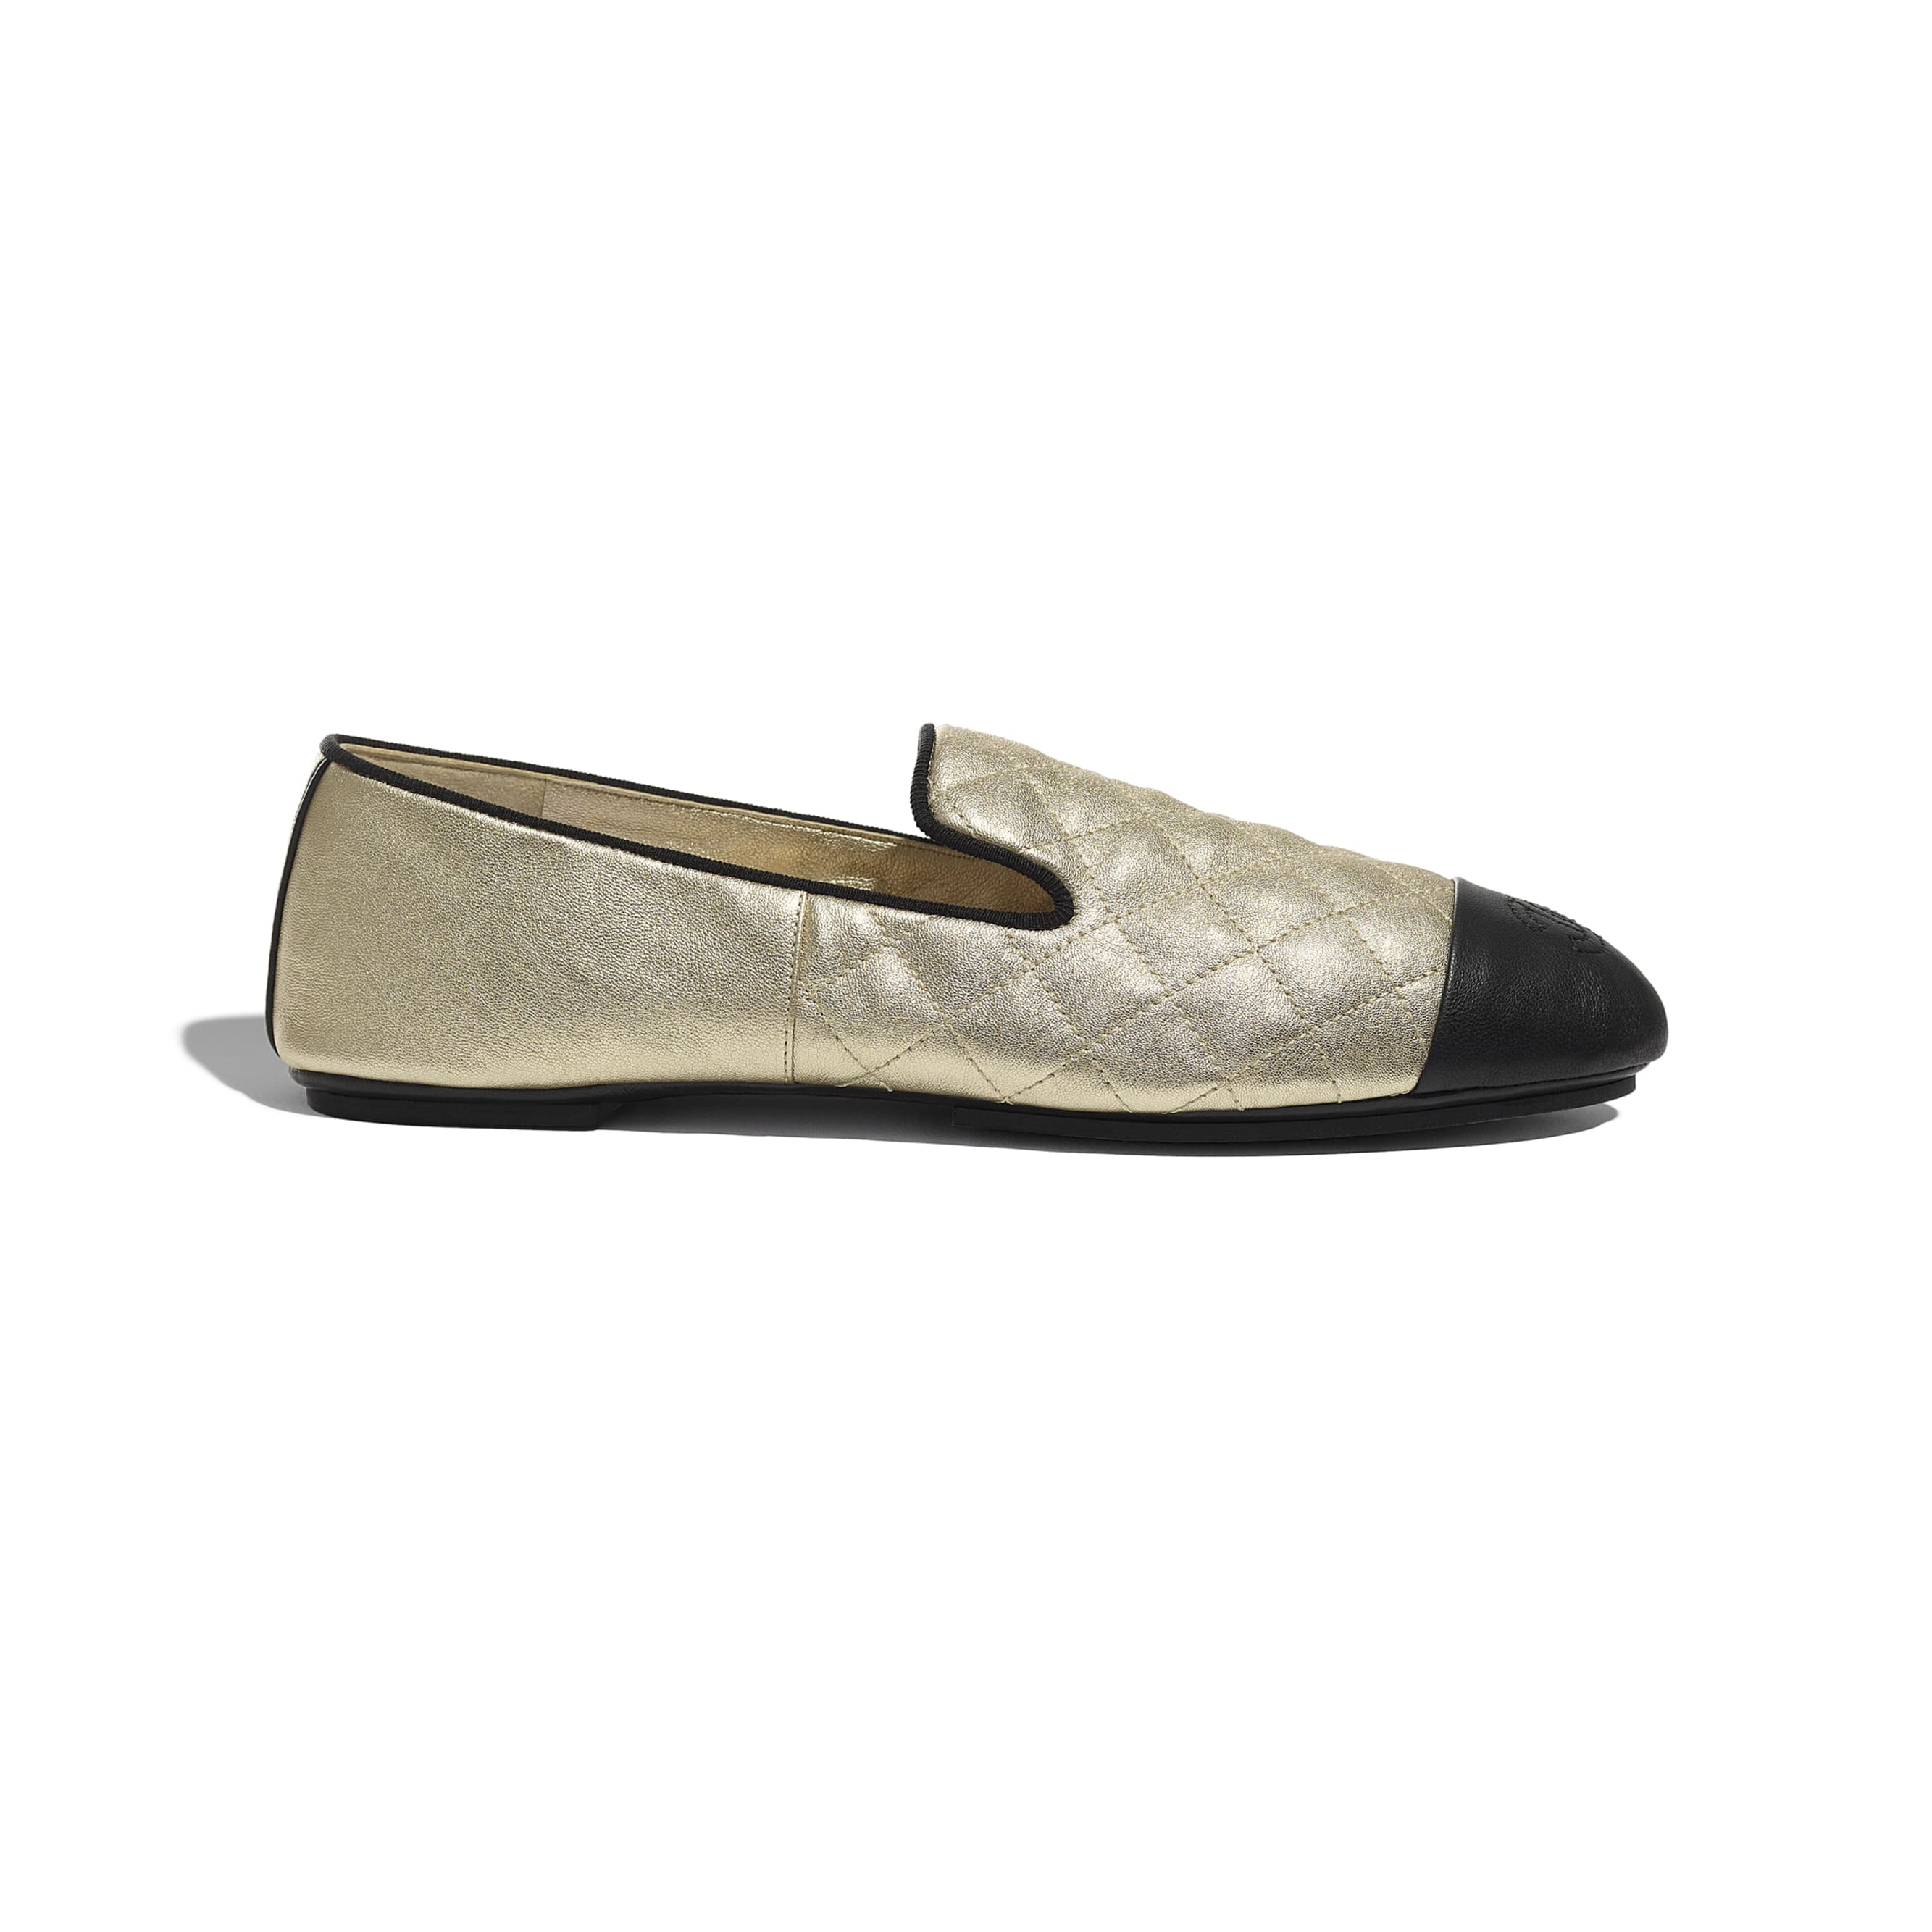 Loafers - Gold & Black - Laminated Lambskin & Lambskin - CHANEL - Default view - see standard sized version